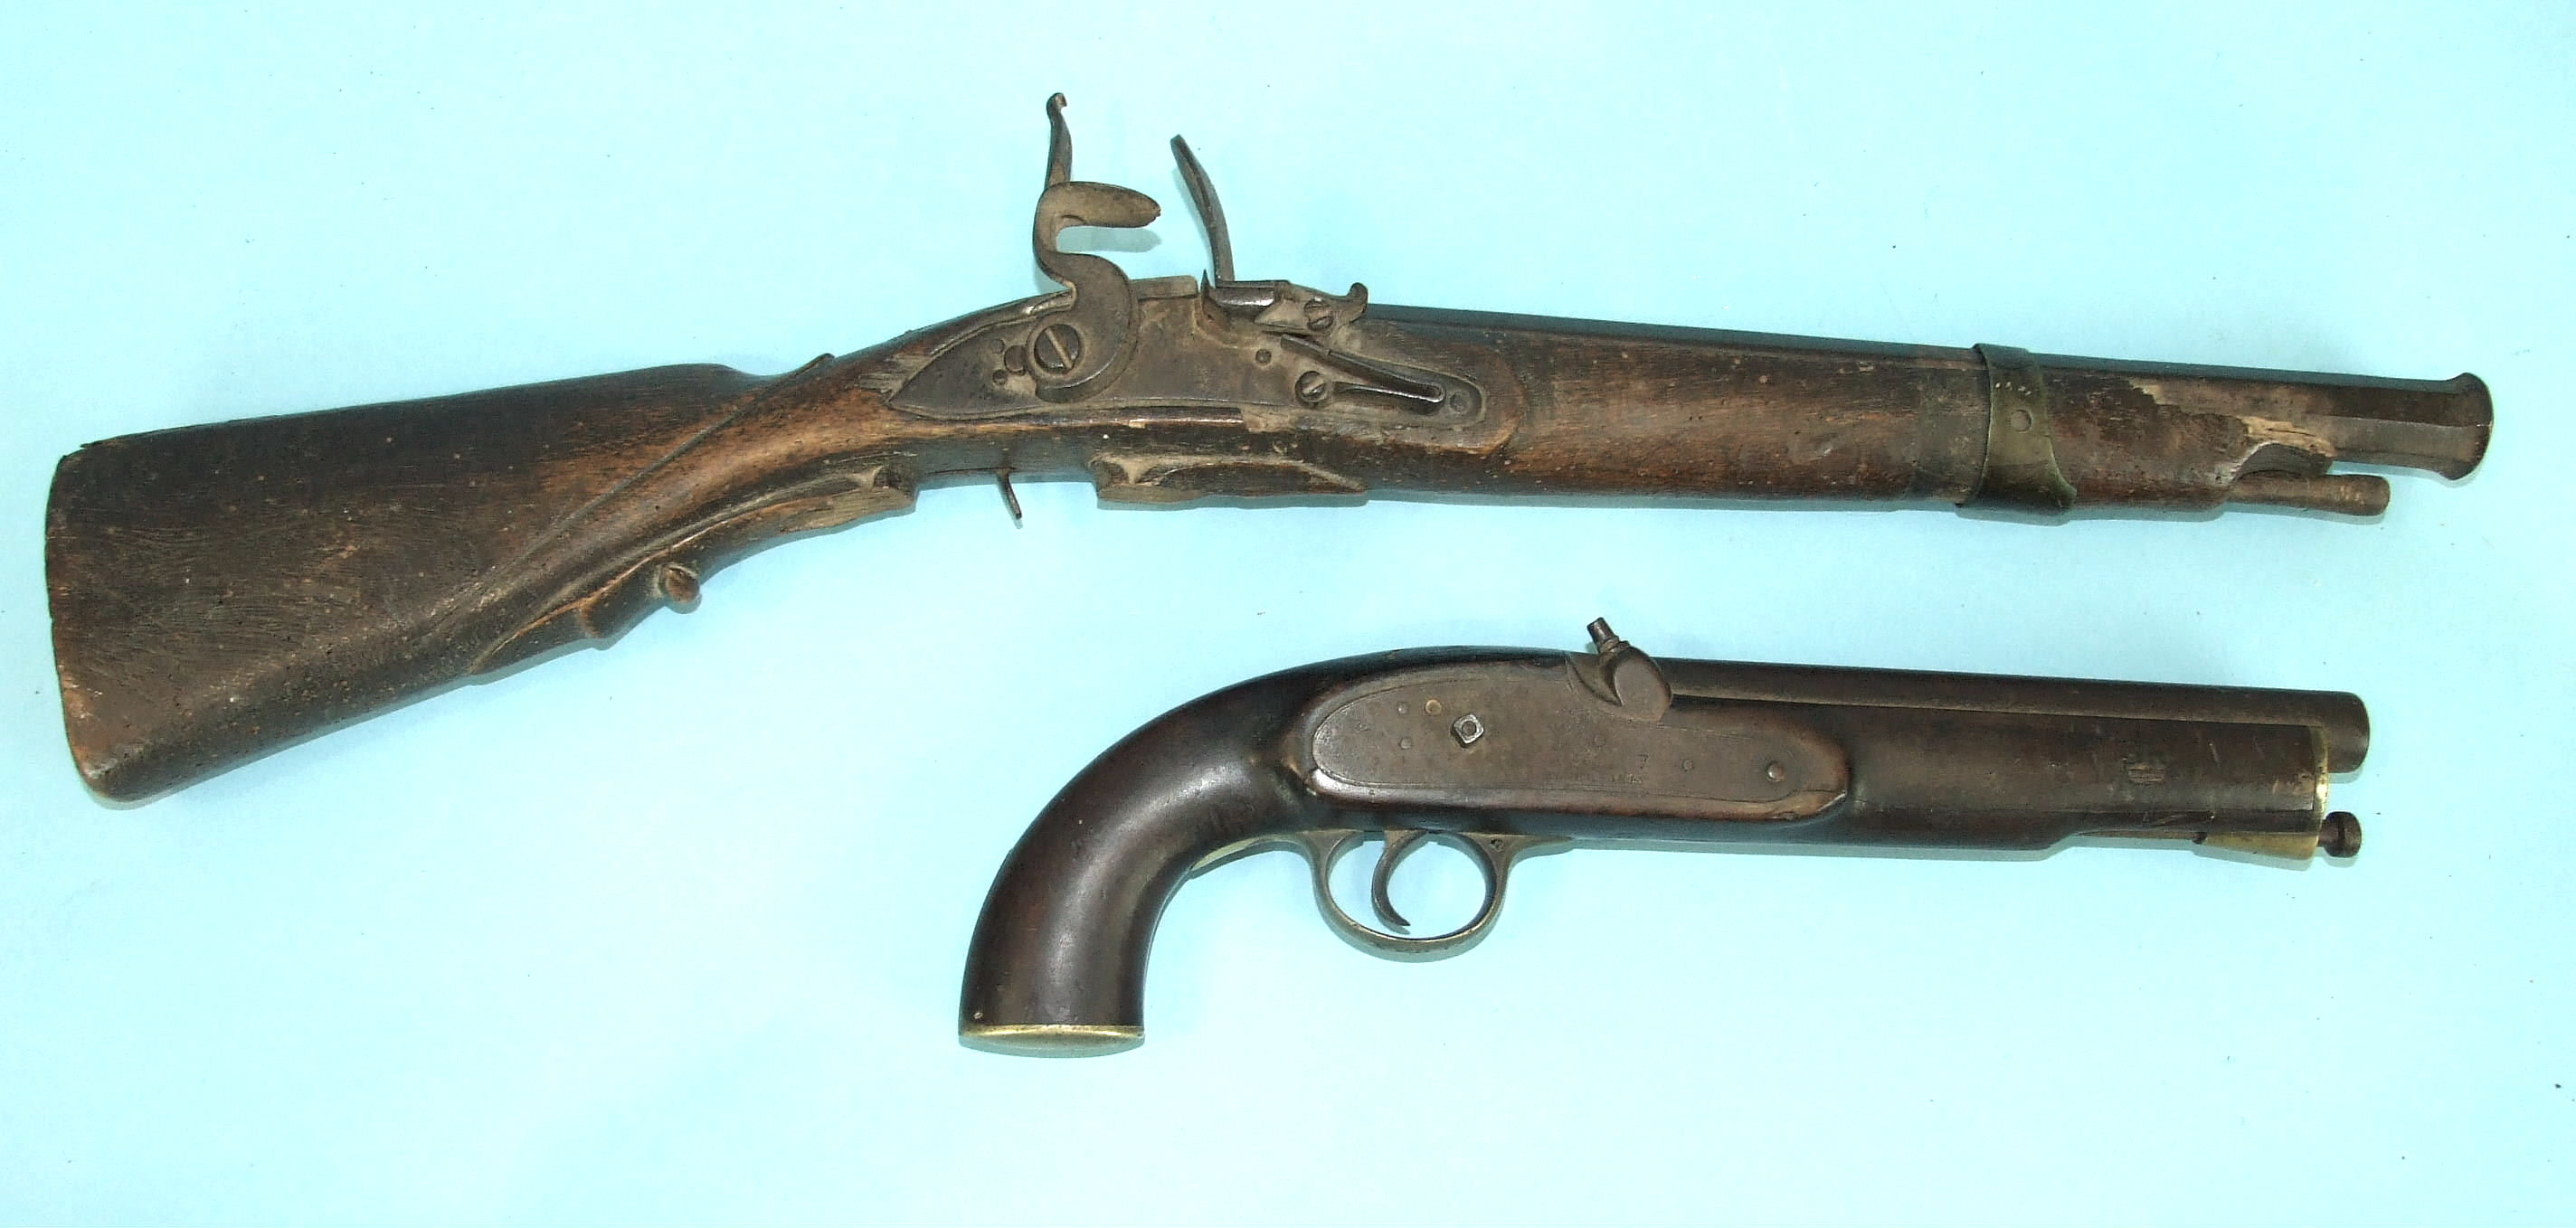 Lot 228 - A Victorian tower percussion service pistol, the 22cm barrel with proof marks, the lock marked 'V